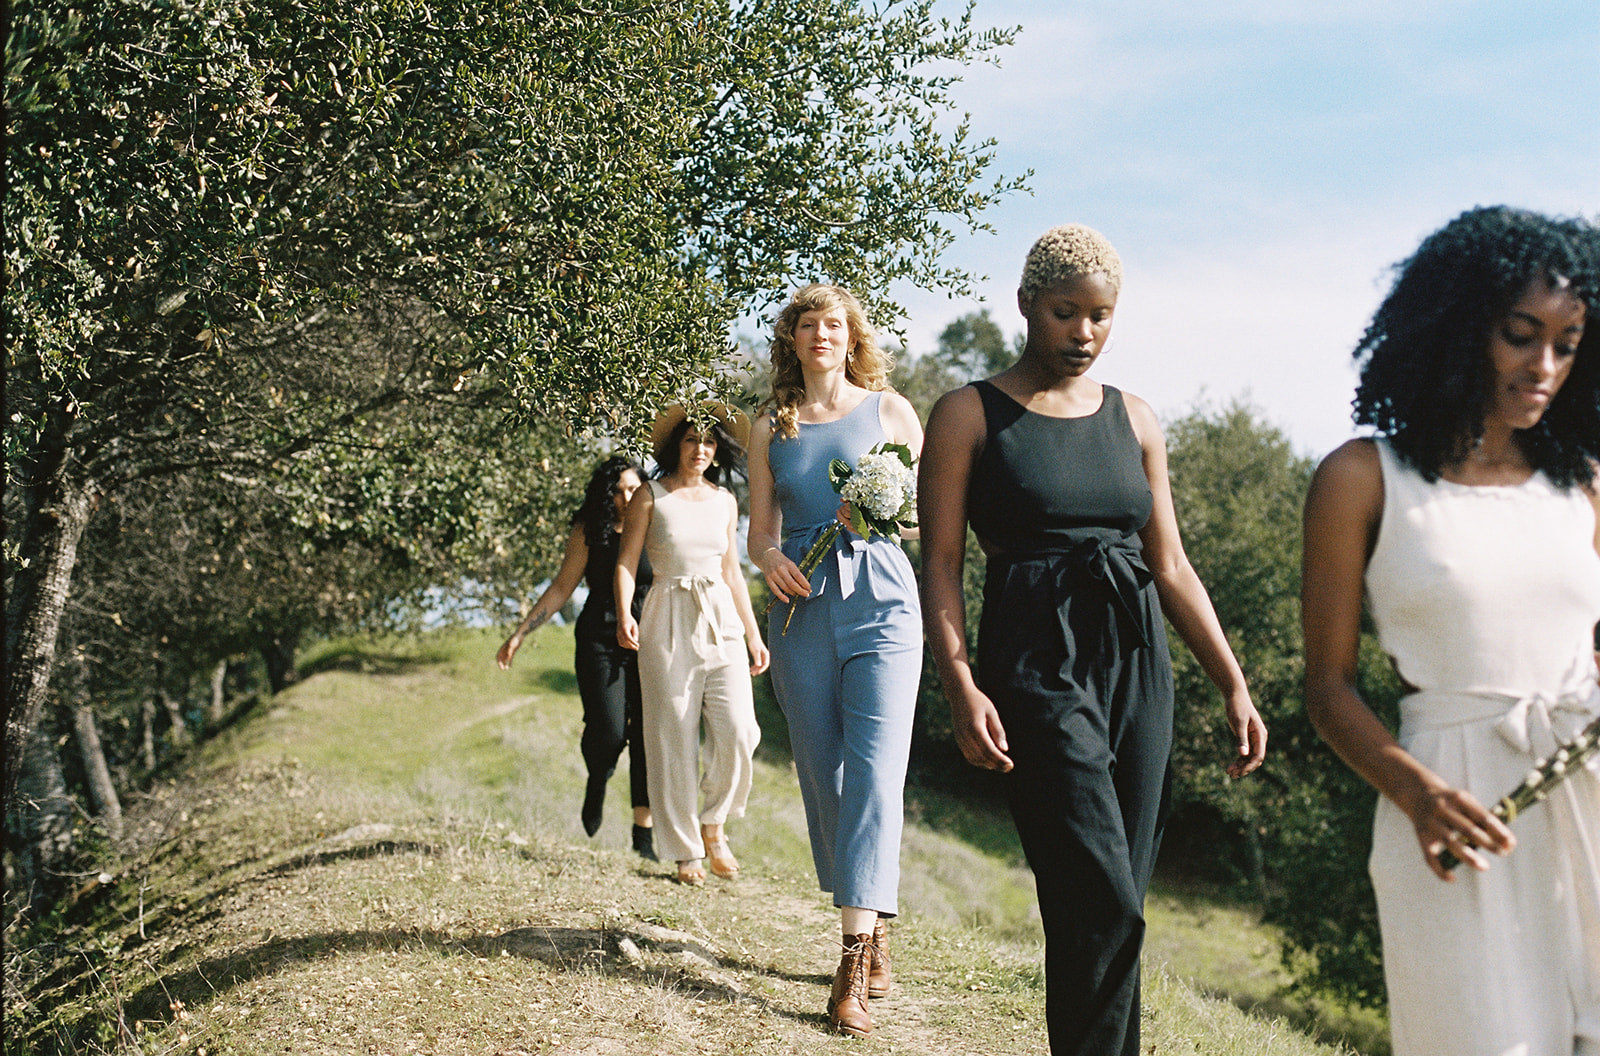 group of women walking in jumpsuits